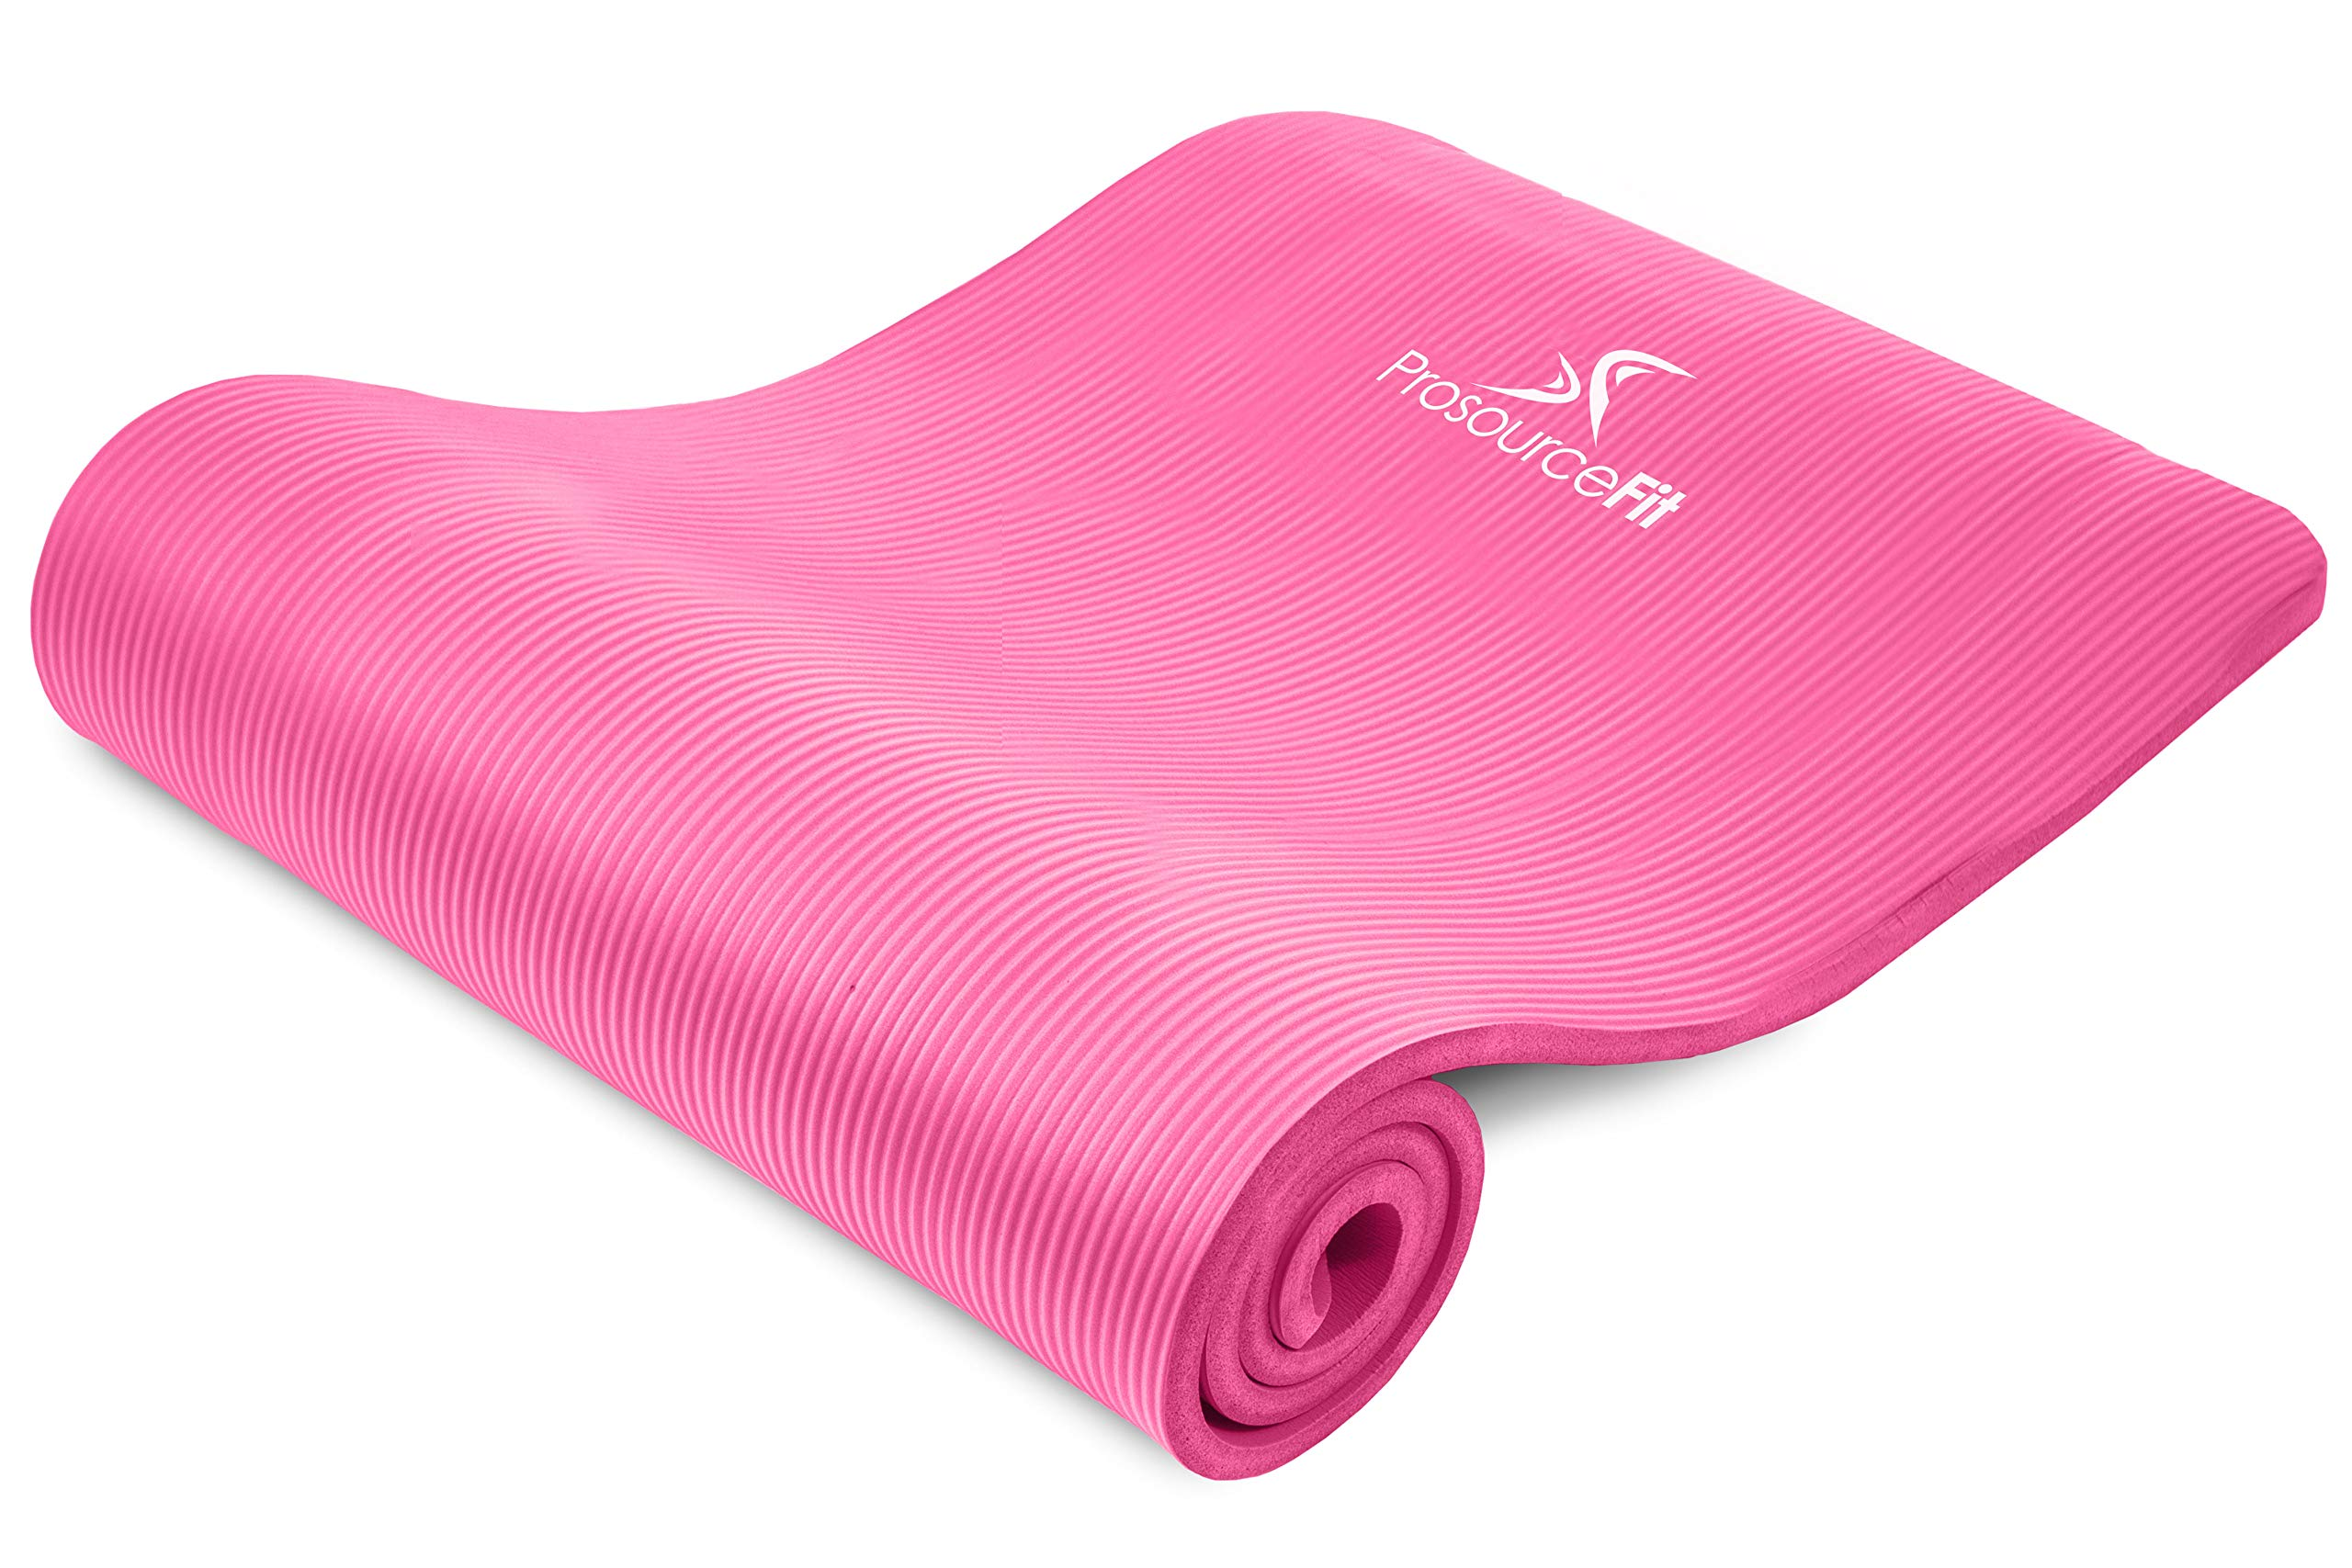 ProsourceFit Extra Thick Yoga and Pilates Mat ½'' (13mm), 71-inch Long High Density Exercise Mat with Comfort Foam and Carrying Strap, Pink